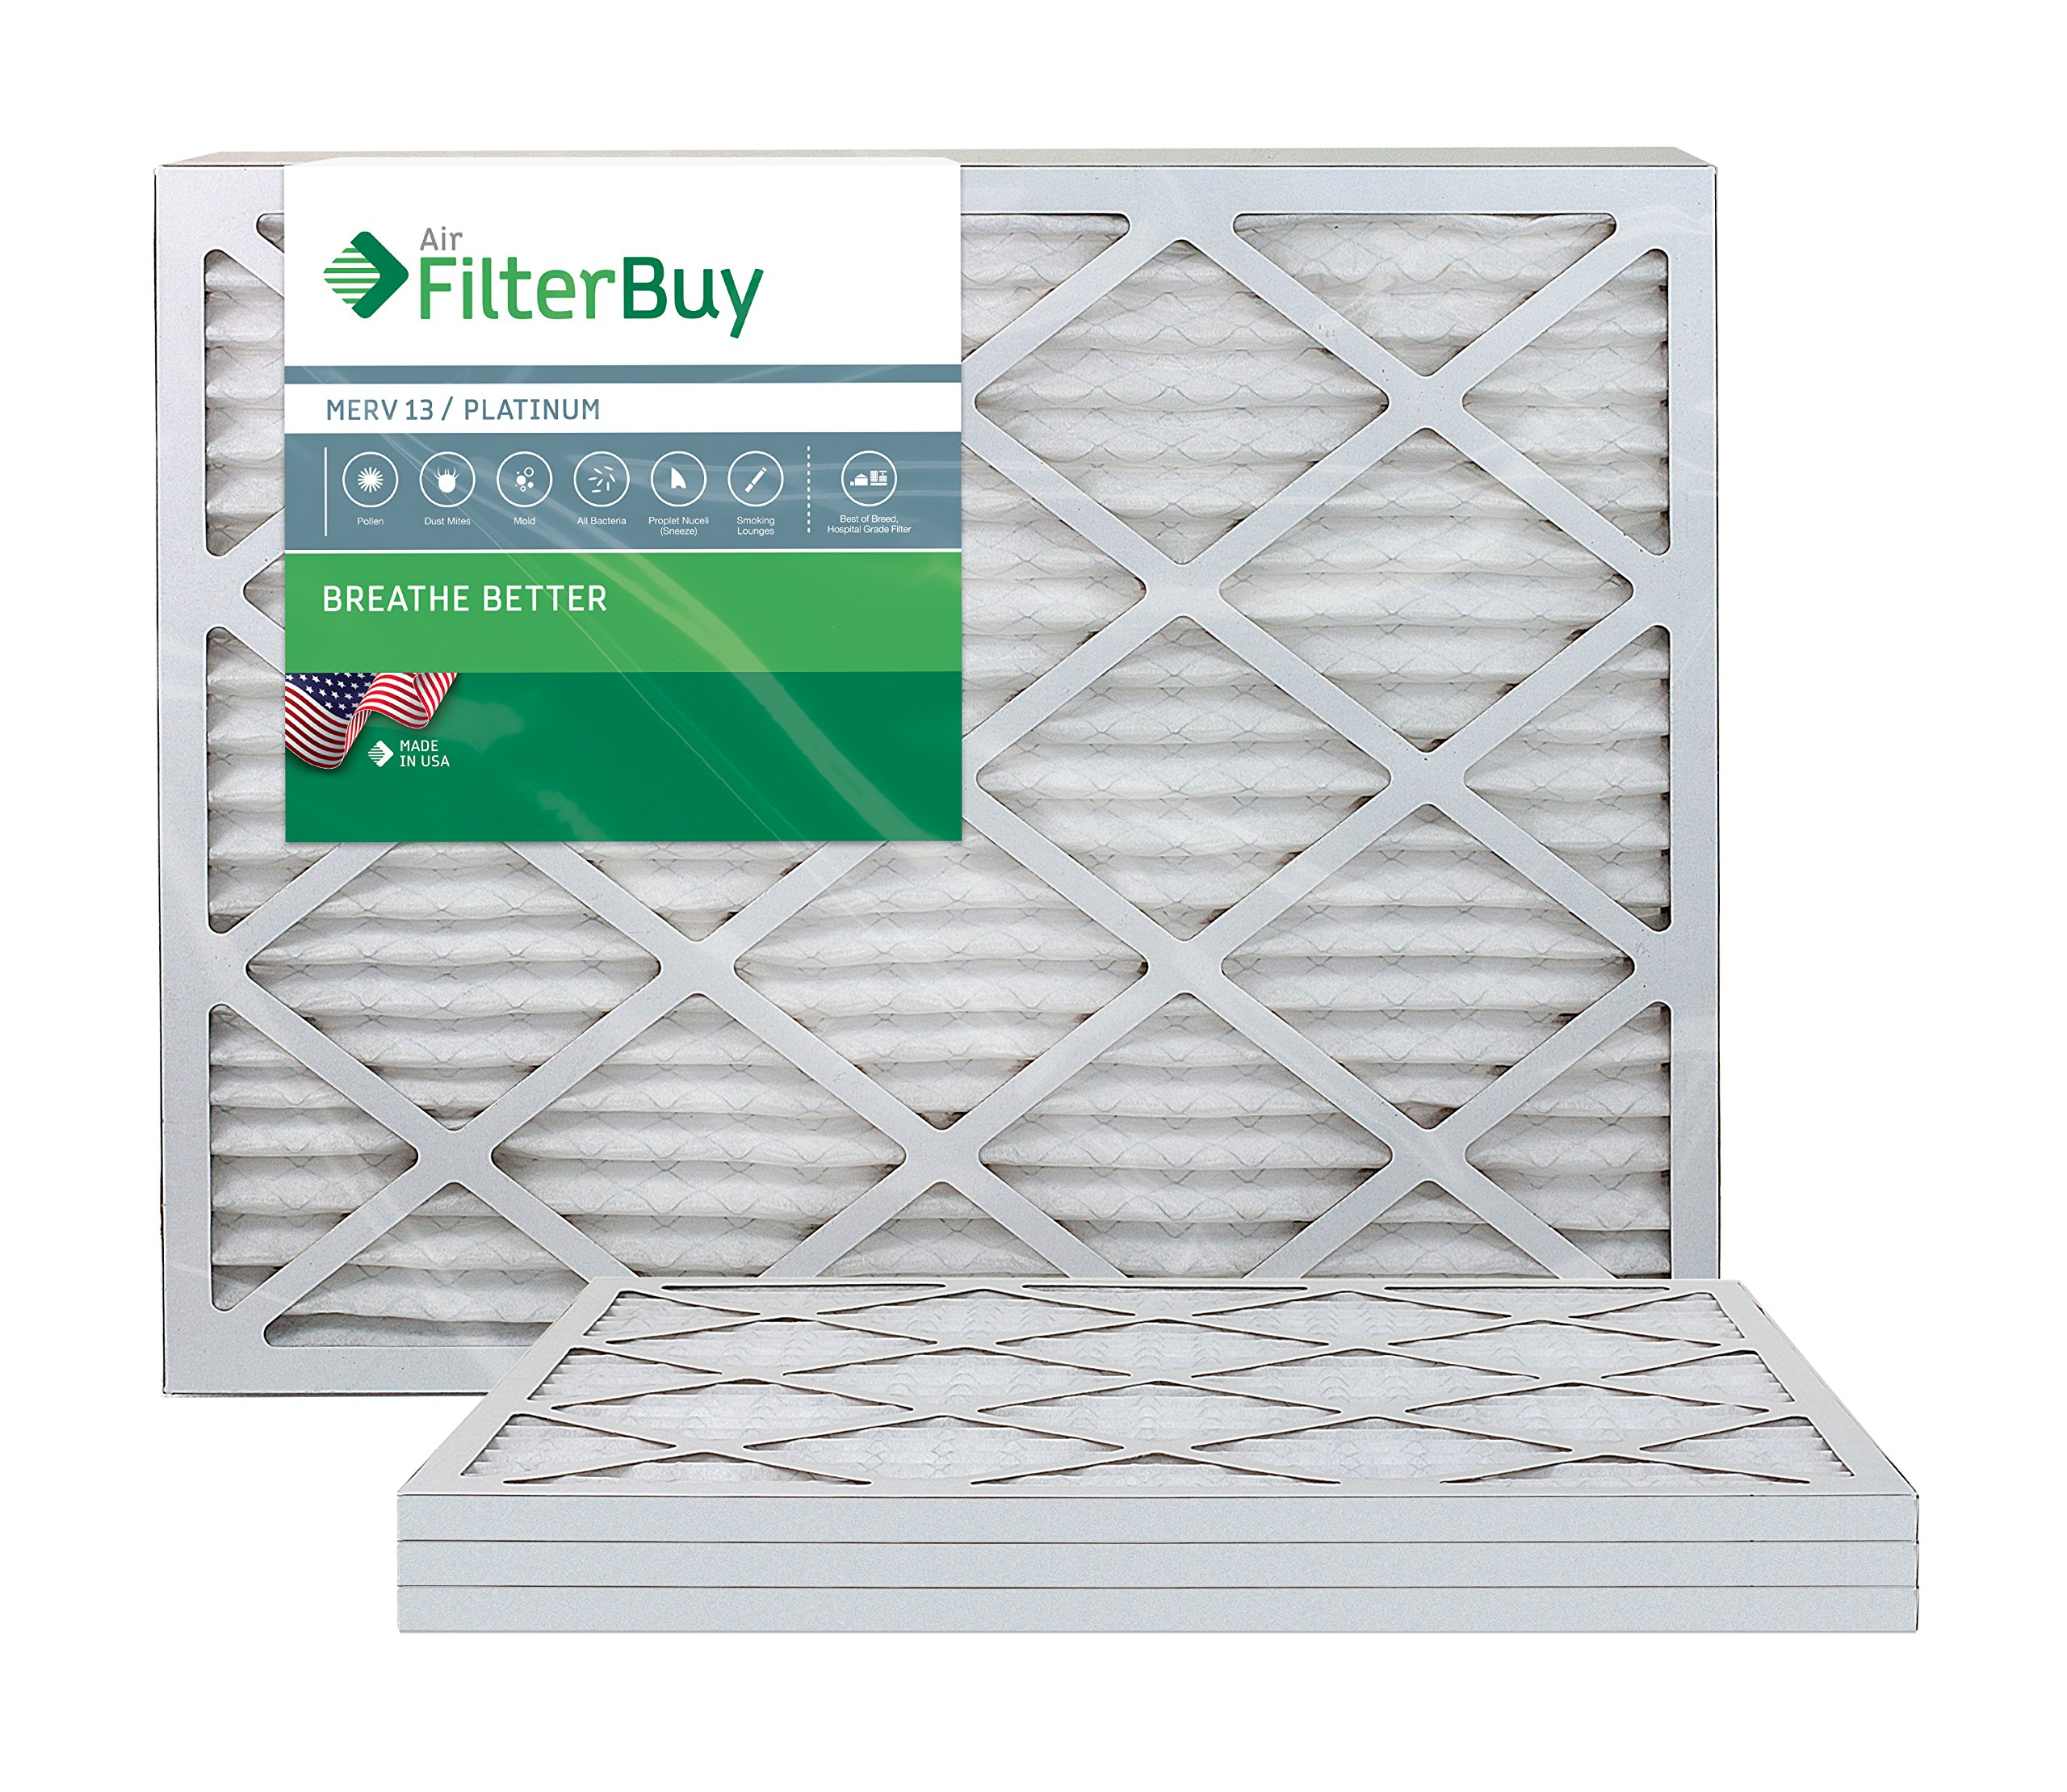 AFB Platinum MERV 13 20x23x1 Pleated AC Furnace Air Filter. Pack of 4 Filters. 100% produced in the USA. by FilterBuy